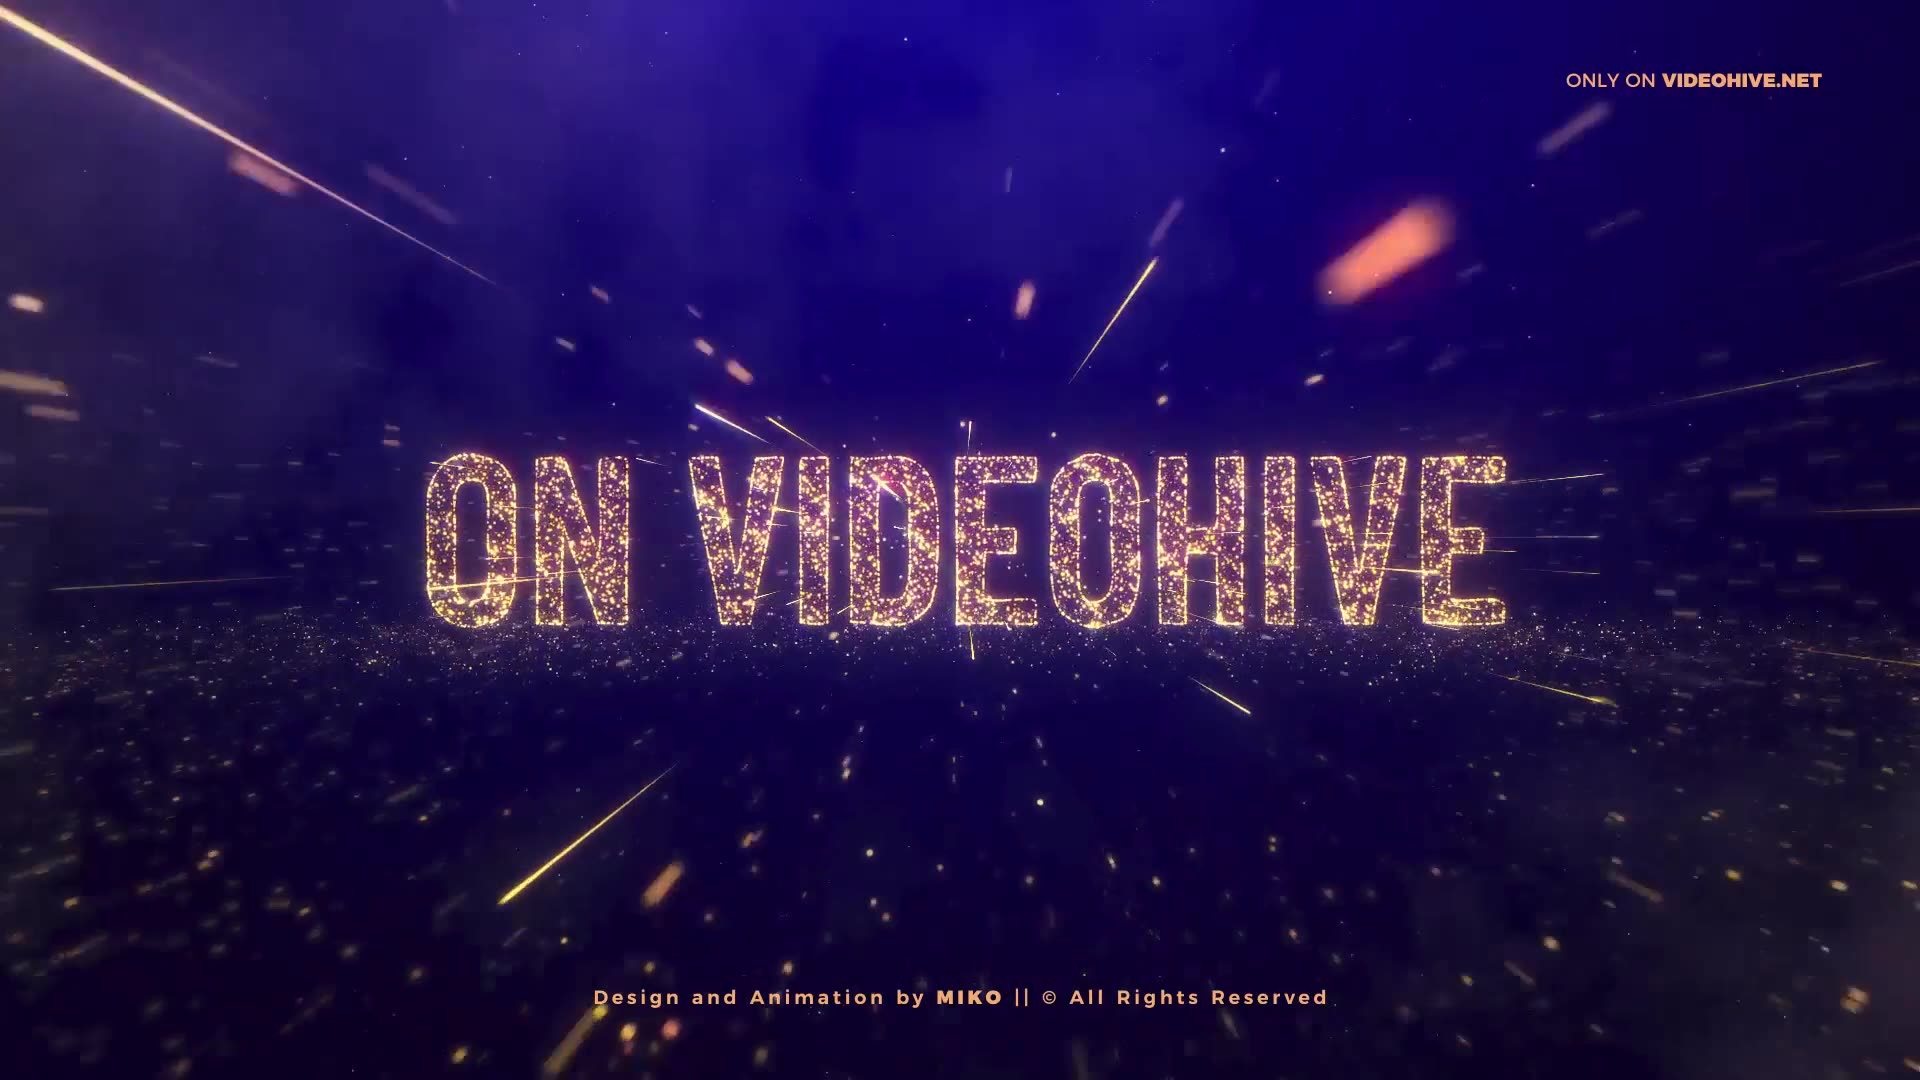 Awards Gold Particles Titles Videohive 24513891 After Effects Image 3